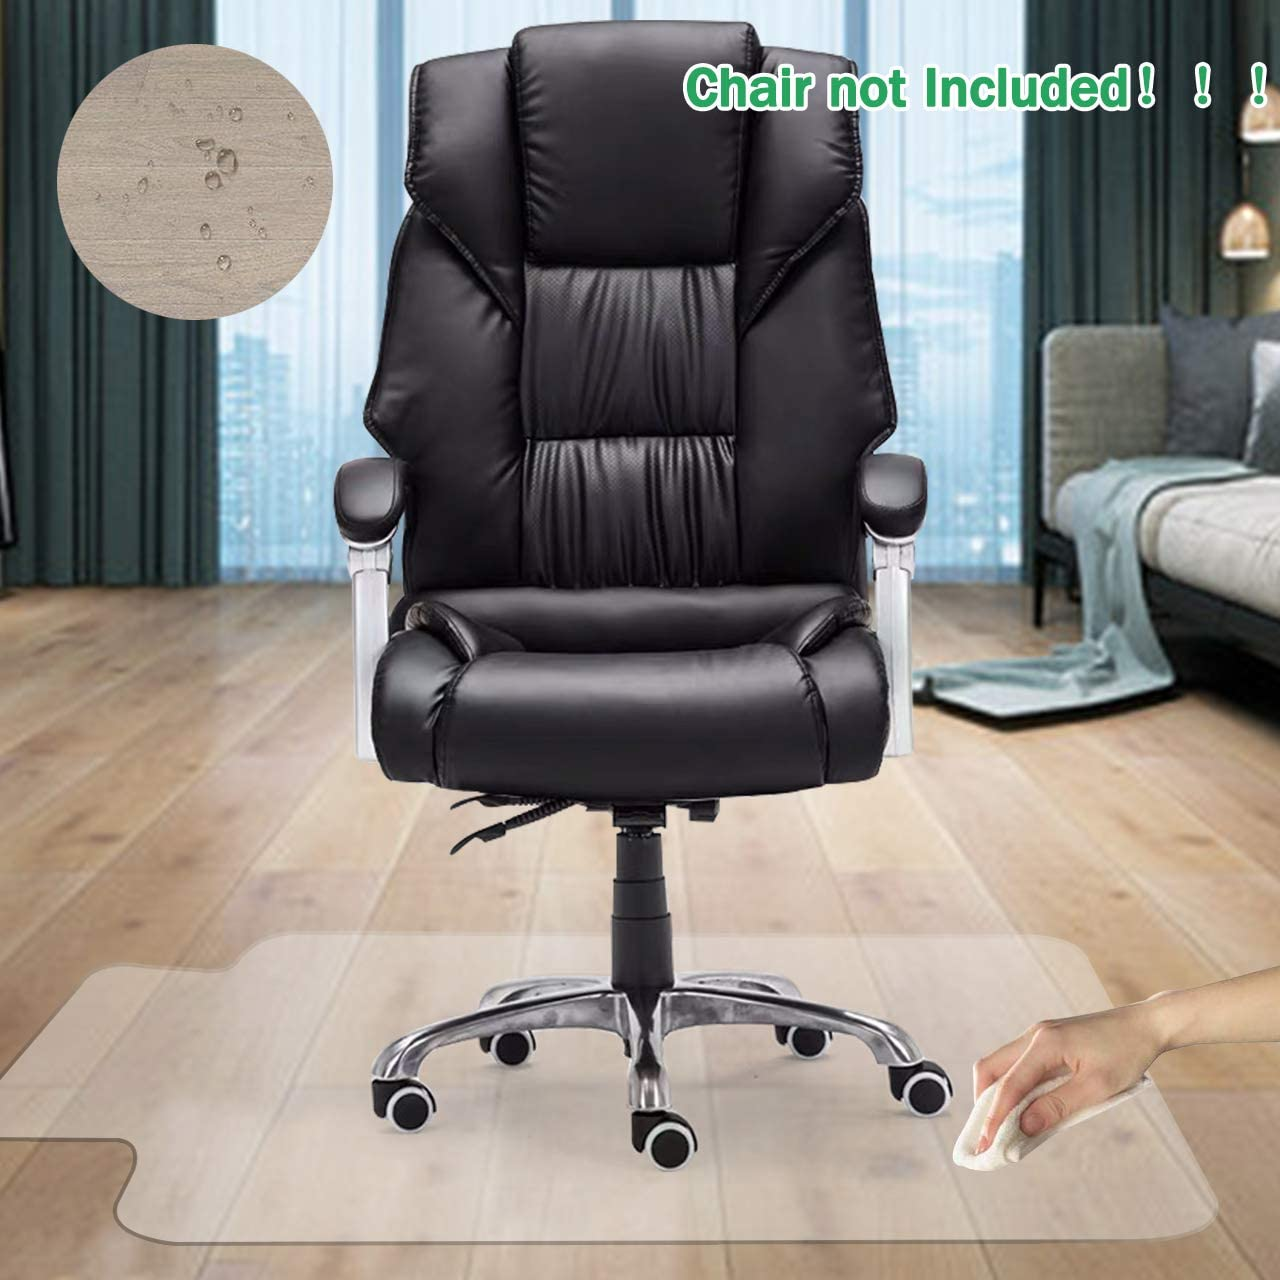 """GeeWin Home Office Chair Mat for Hardwood Floor, 36'' x 48'' Clear Floor Mat for Rolling Chairs, Floor Protector Thick Durable Chair Mat Chairmats (36"""" X 48"""" with Lip)"""